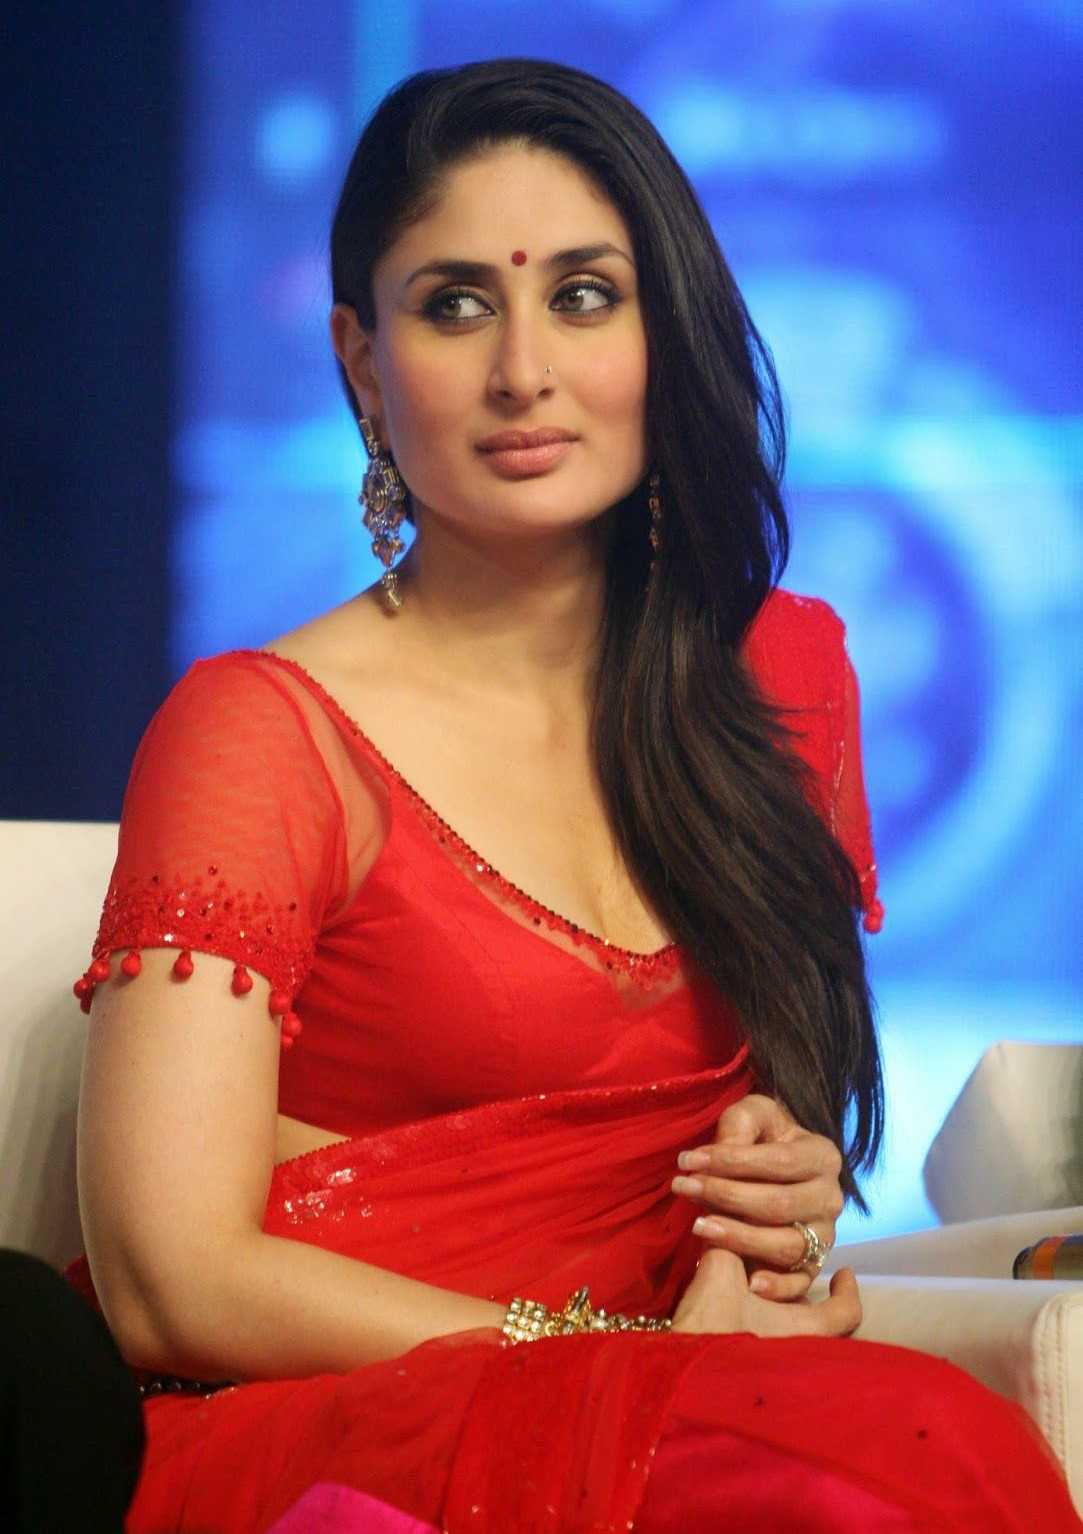 Kareena Kapoor Indian Actress